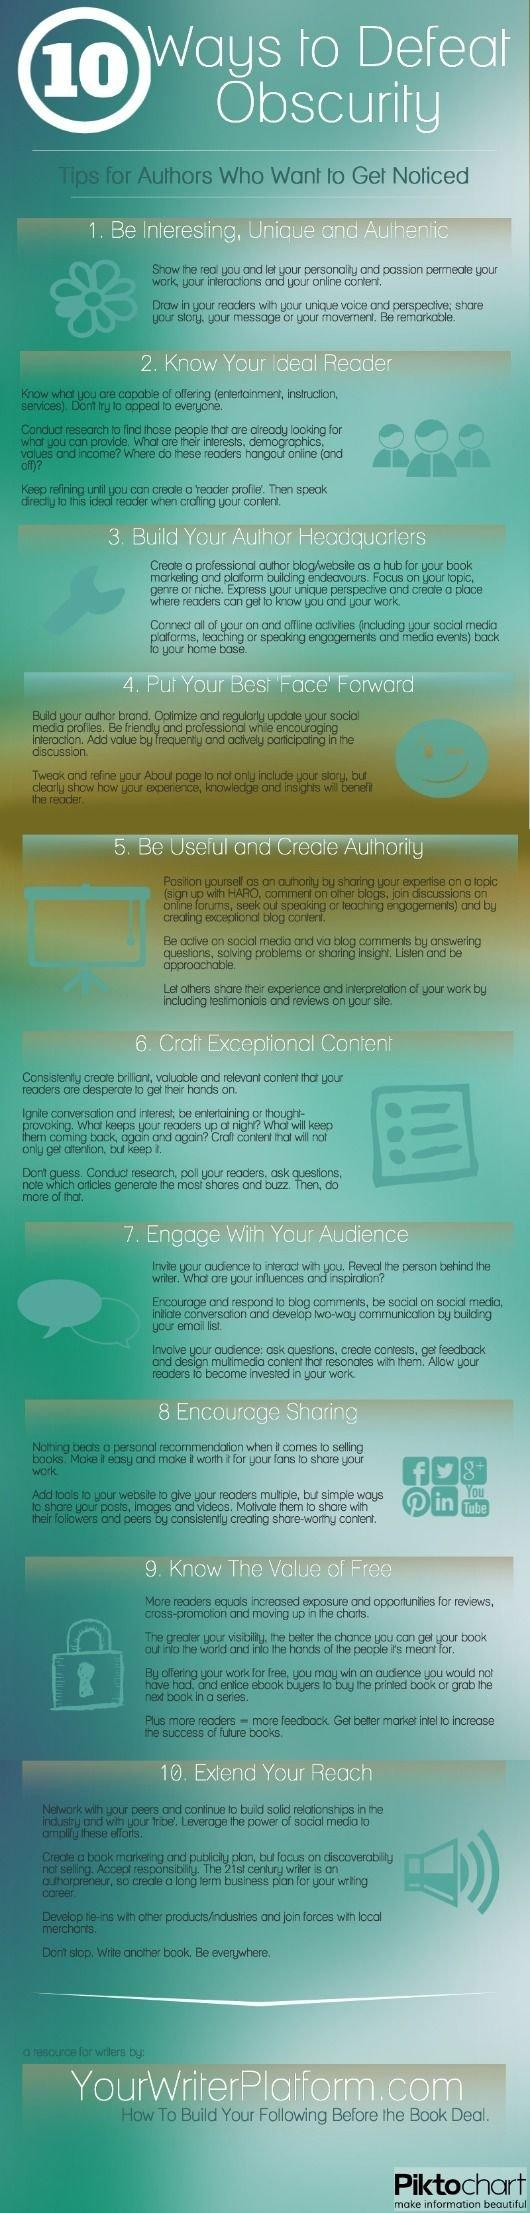 10 Ways To Defeat Obscurity Tips For Authors Who Want To Get Noticed Infographic